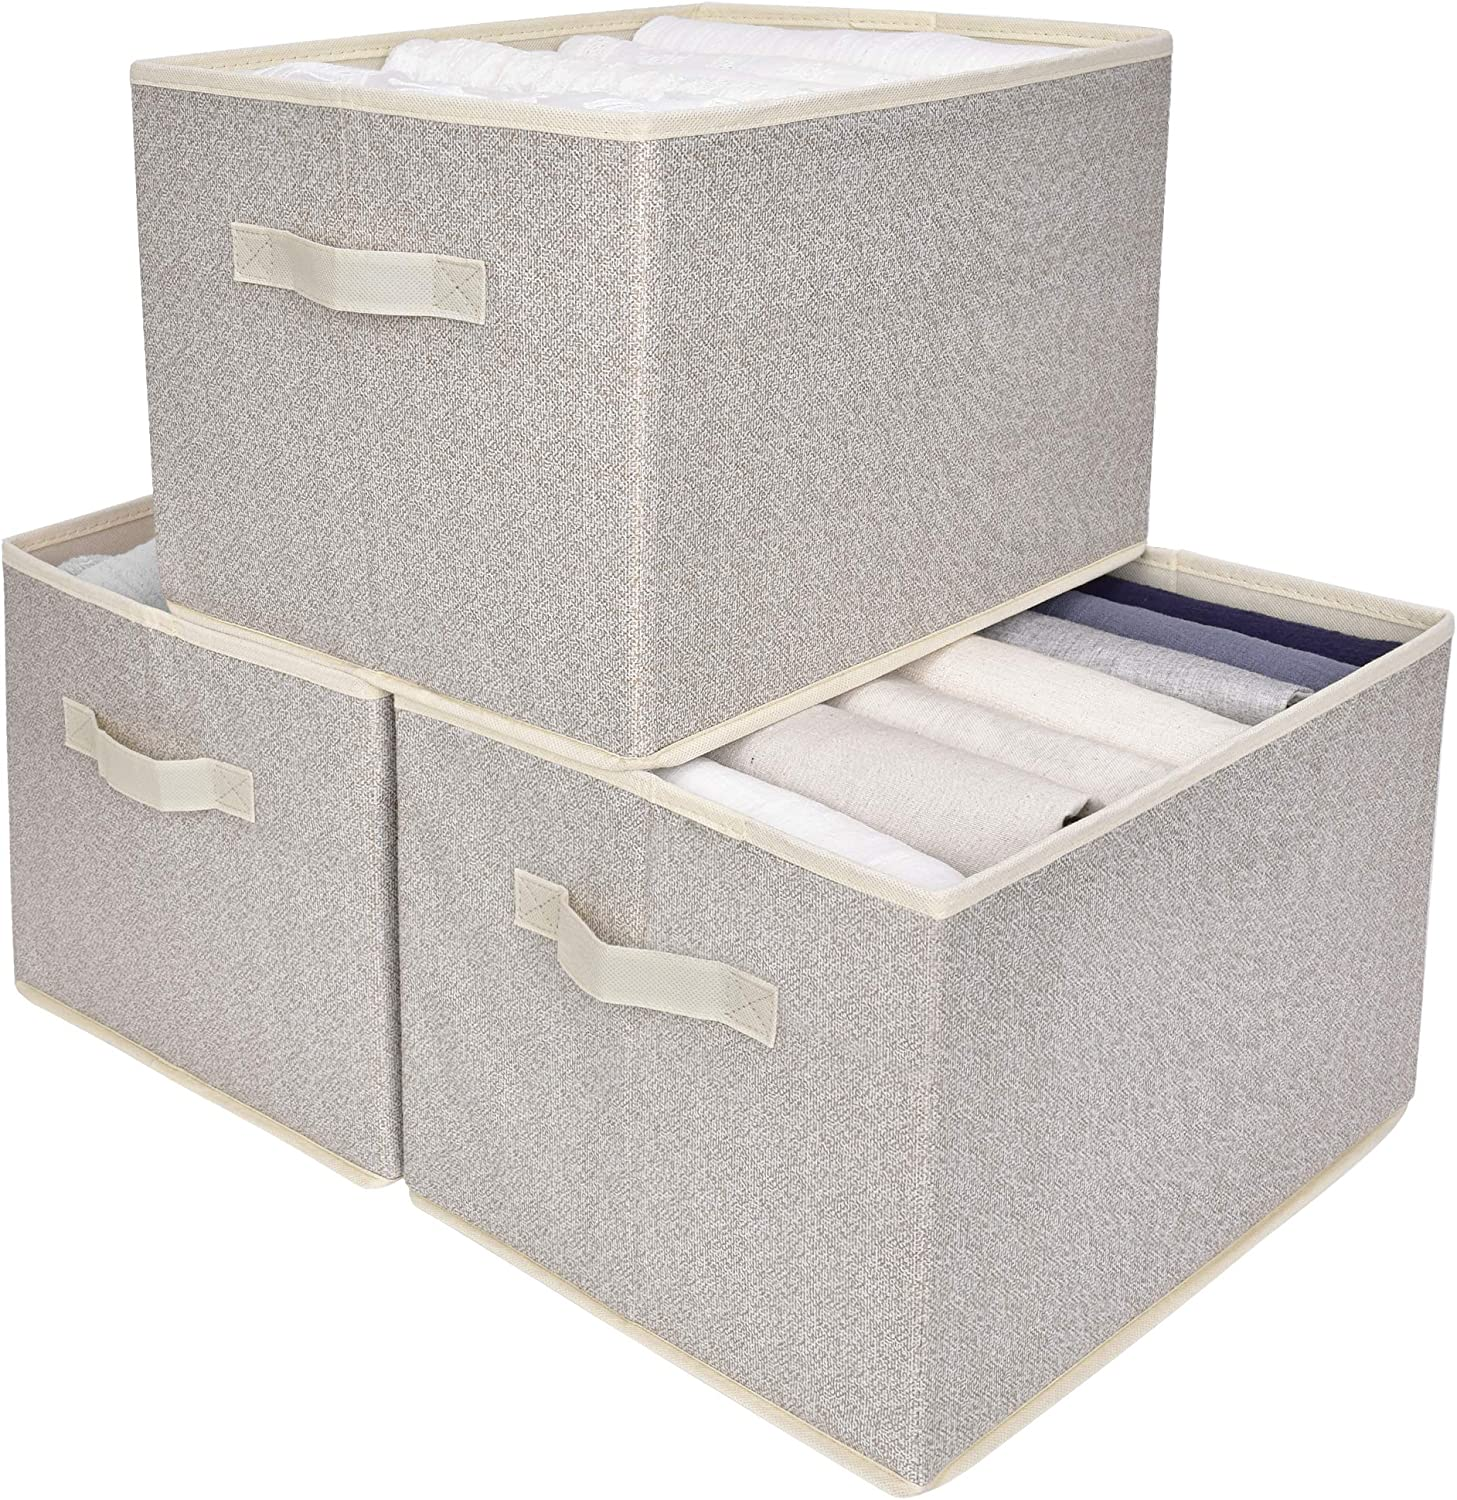 GRANNY SAYS Storage Bin for Shelves, Fabric Closet Organizer Shelf Cube Box with Handle Home Office Storage Baskets, Beige, Extra Large, 3-Pack